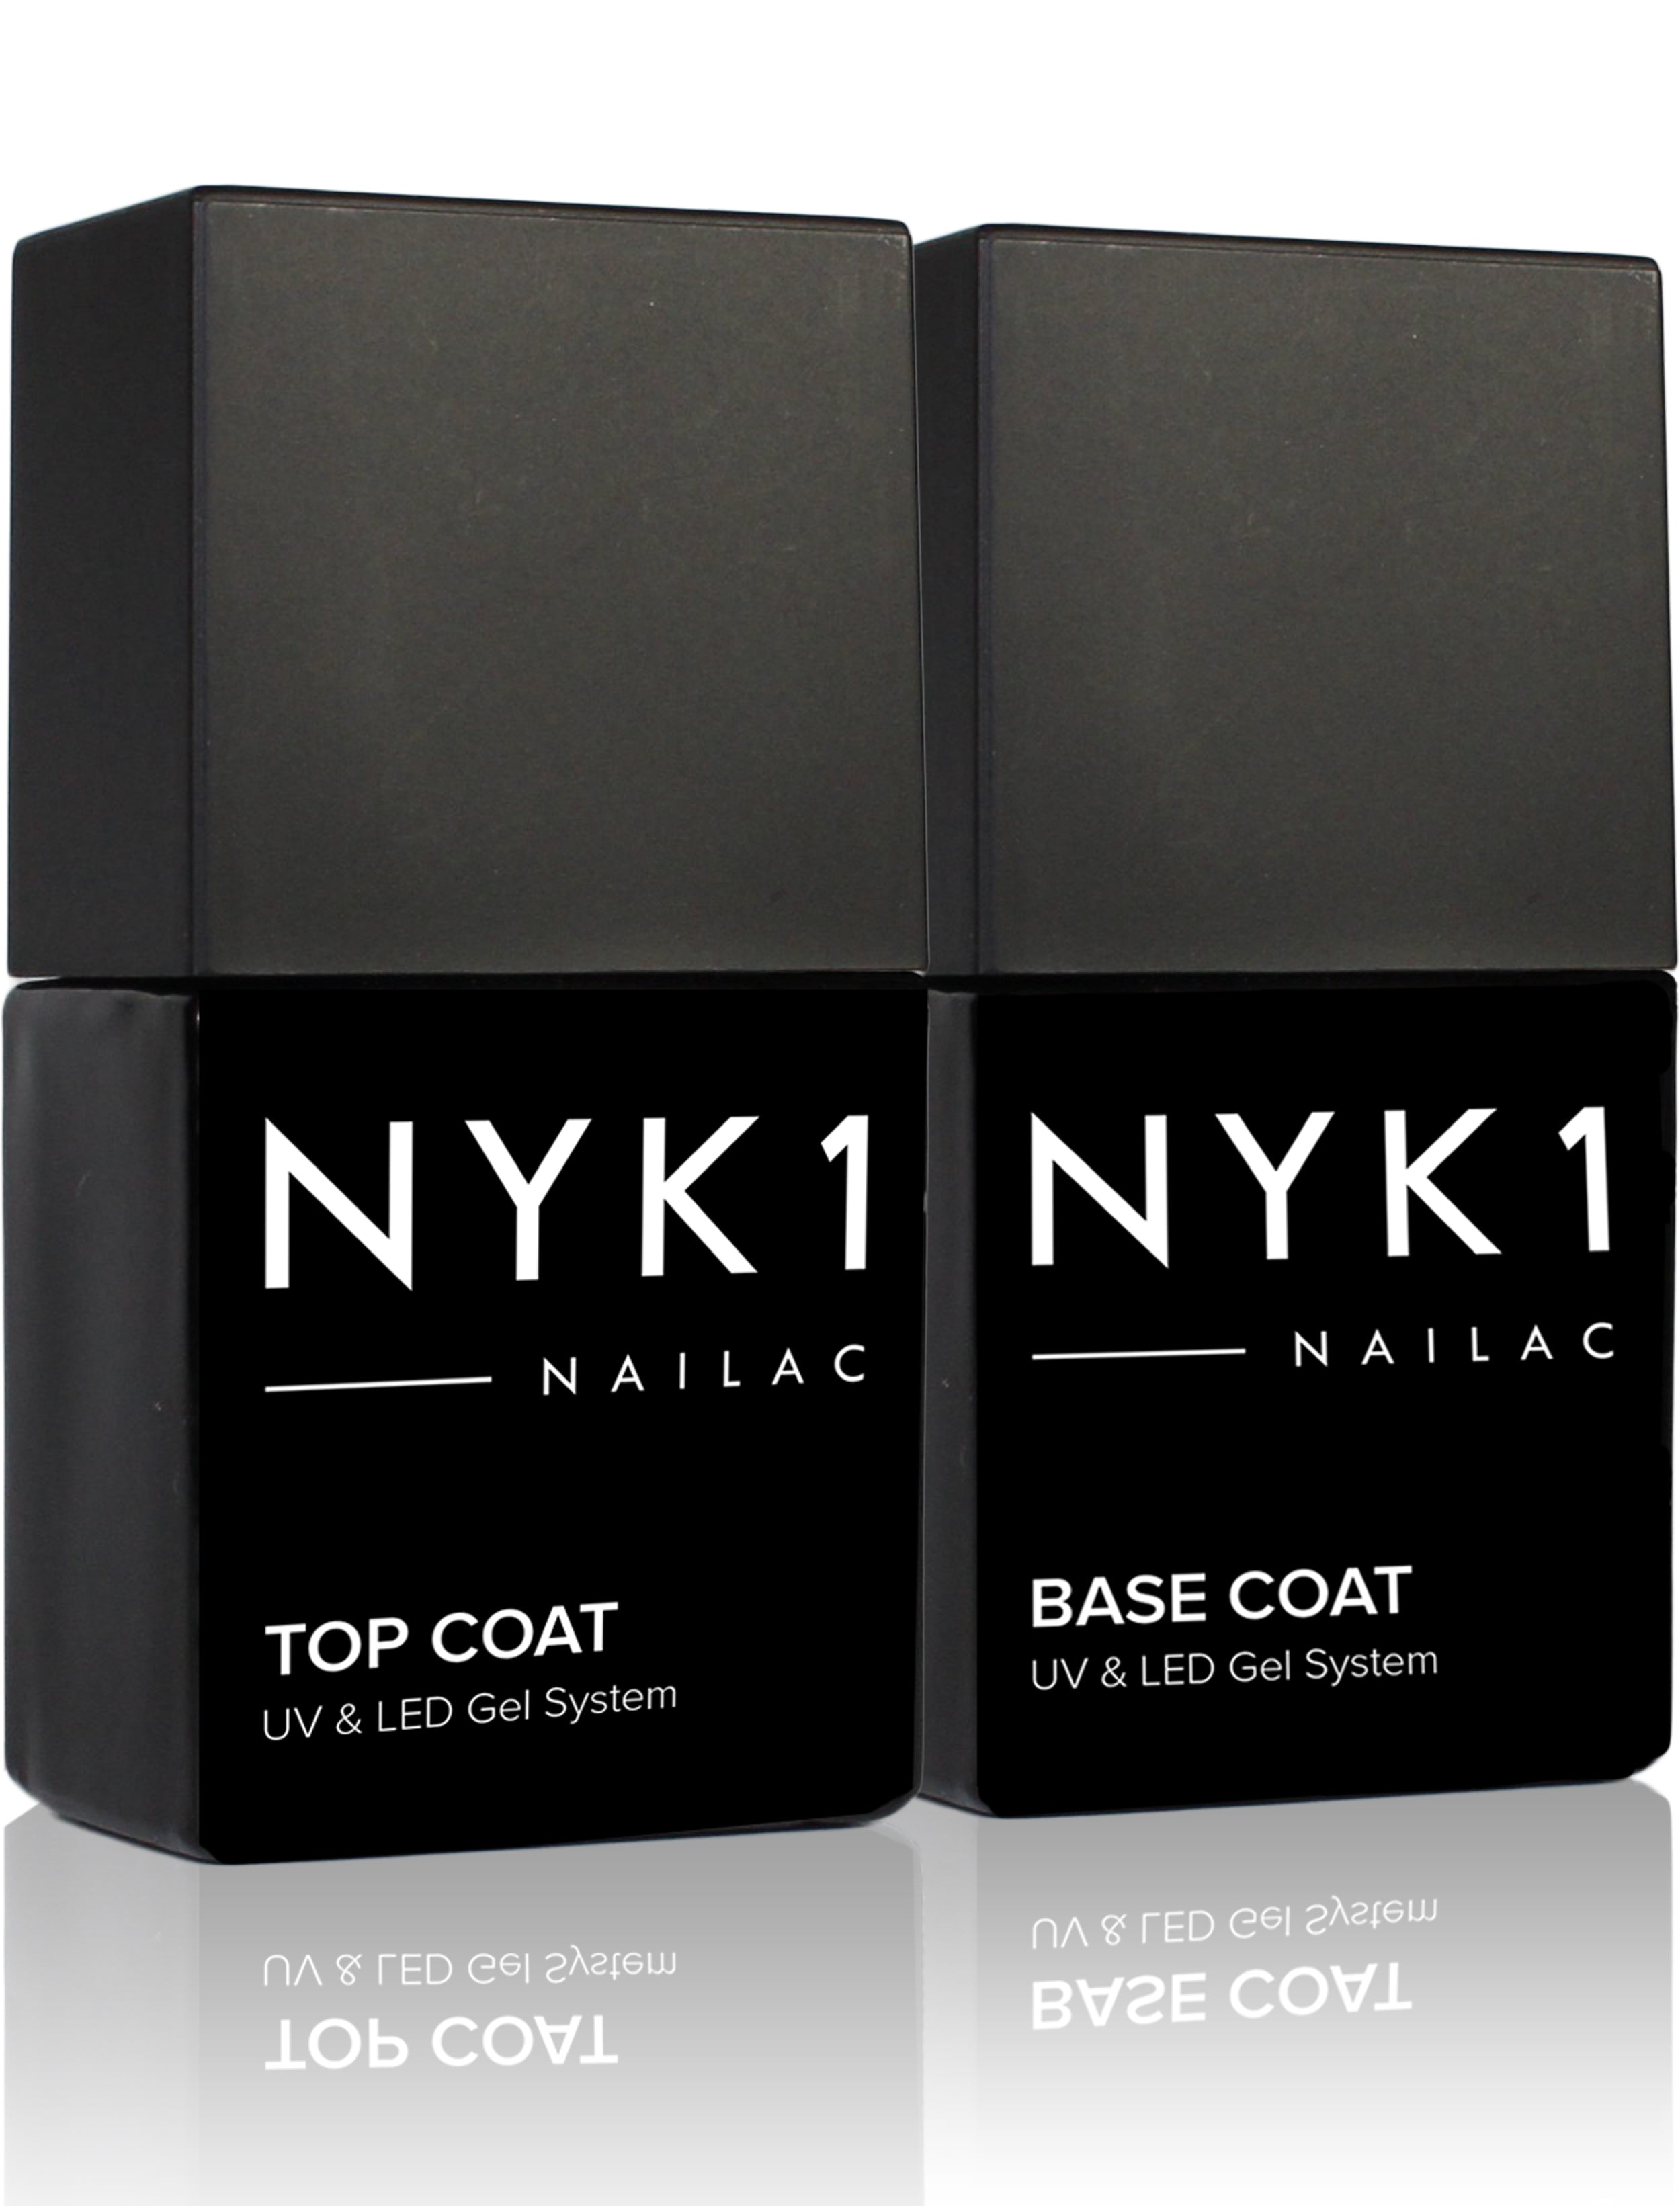 NYK1 Vital 3 TOP Up Nailac Gel and Acrylic Nail Accessory Value Pack